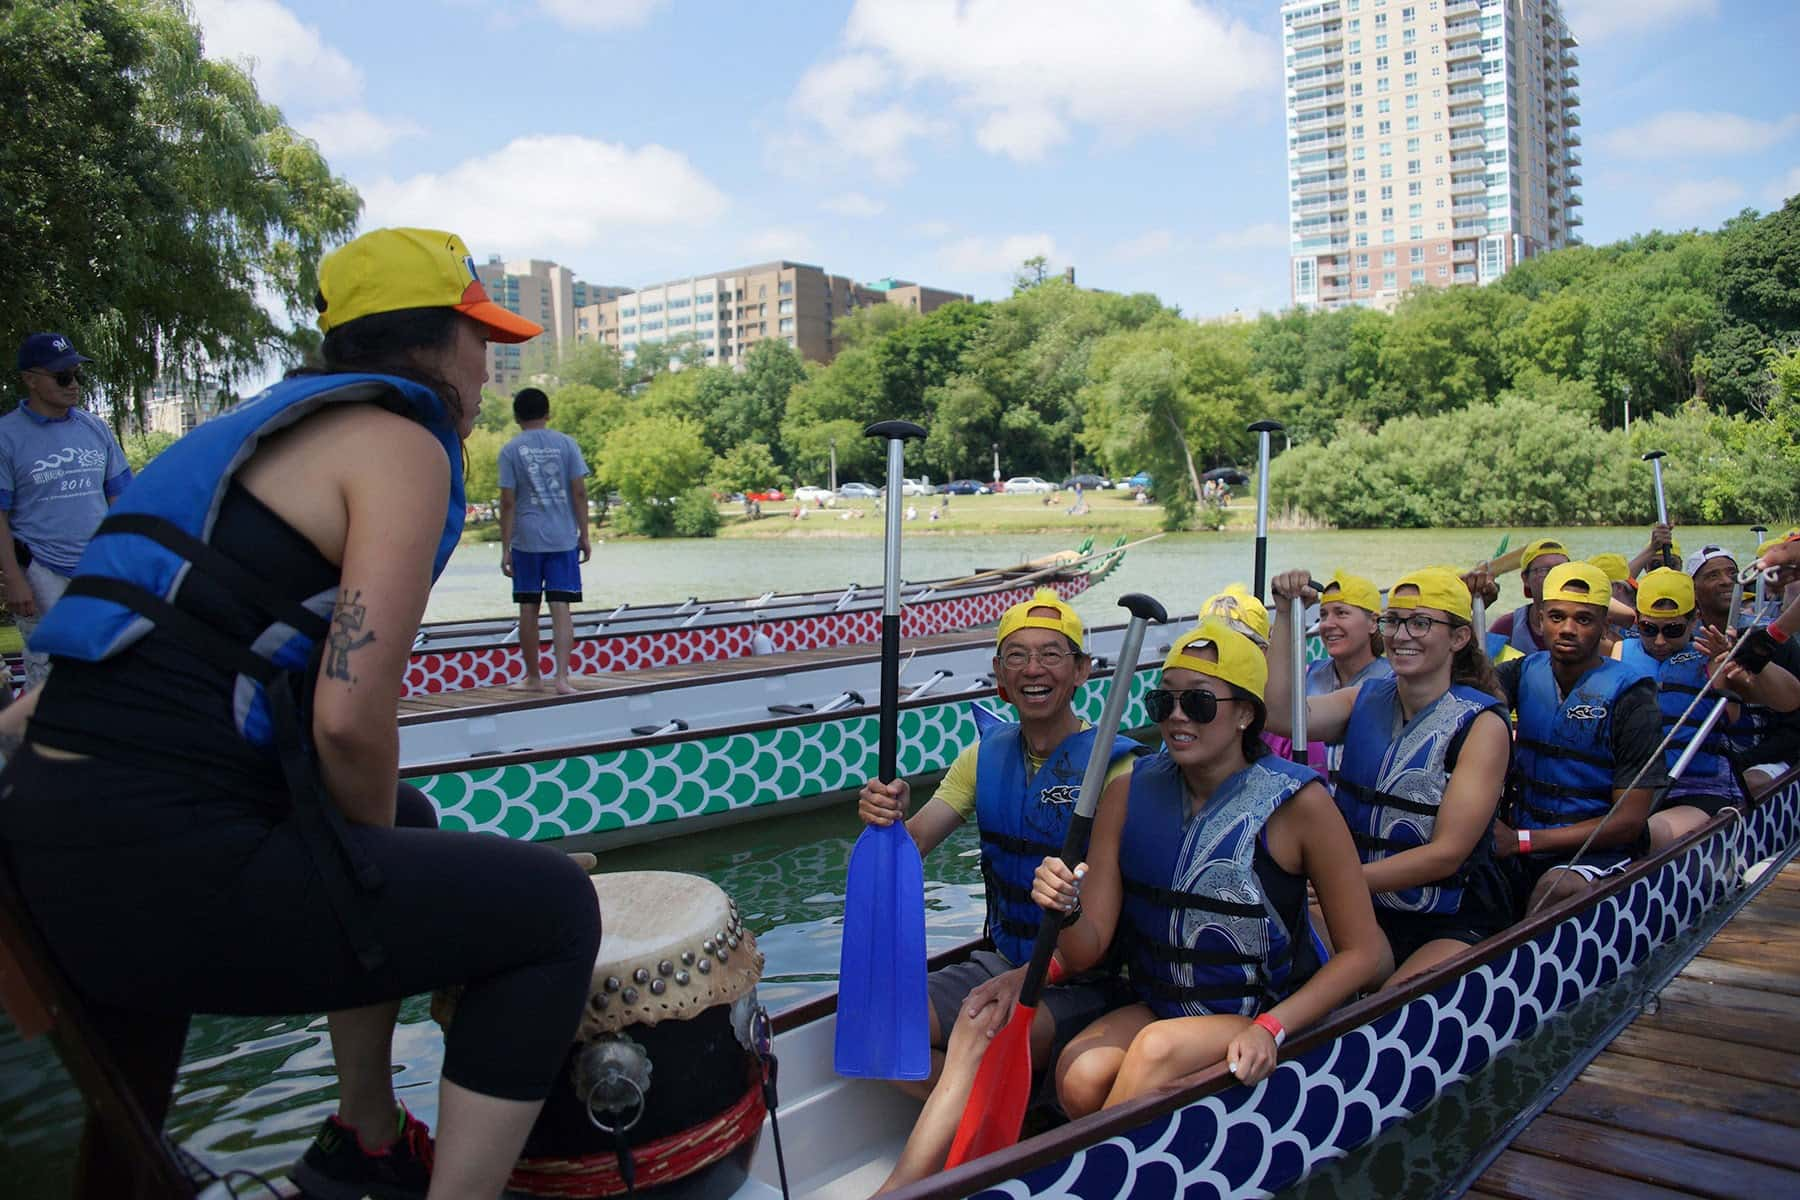 080116_dragonboat_album_01_07